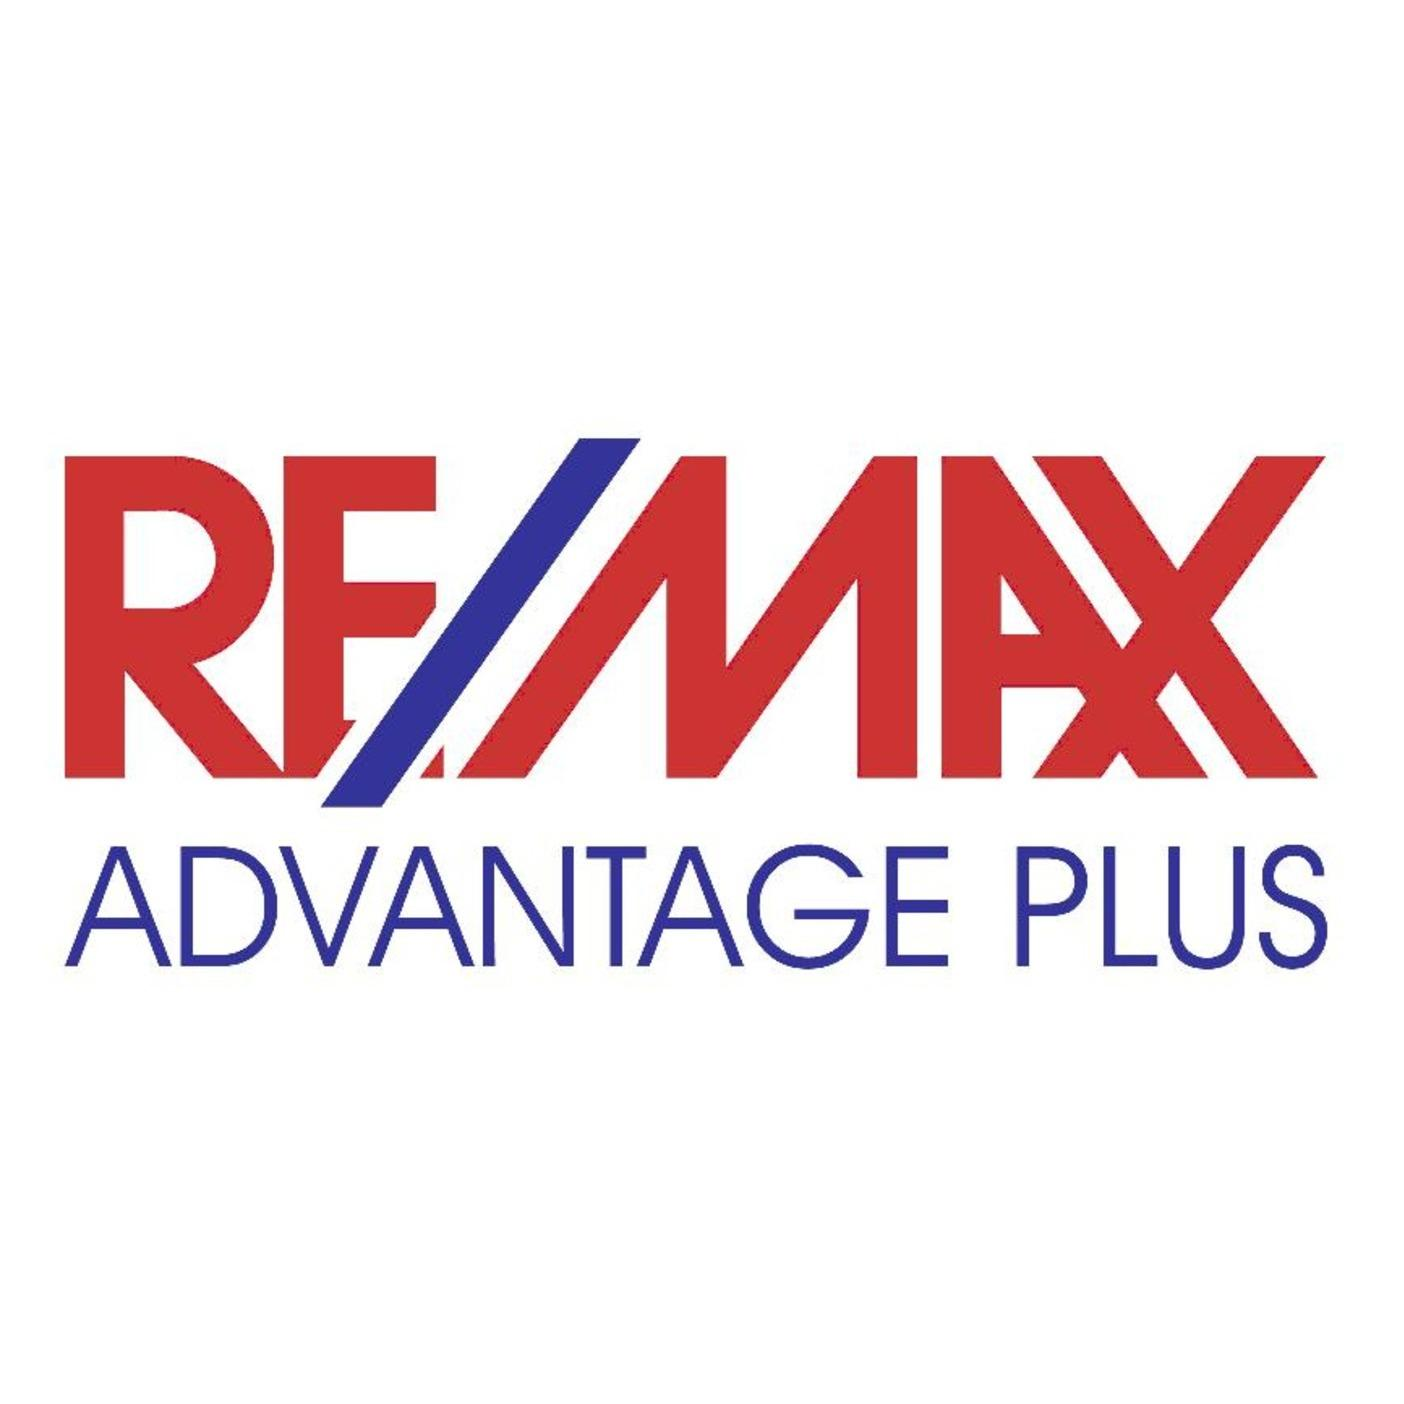 The Luzzi Team | RE/MAX Advantage Plus